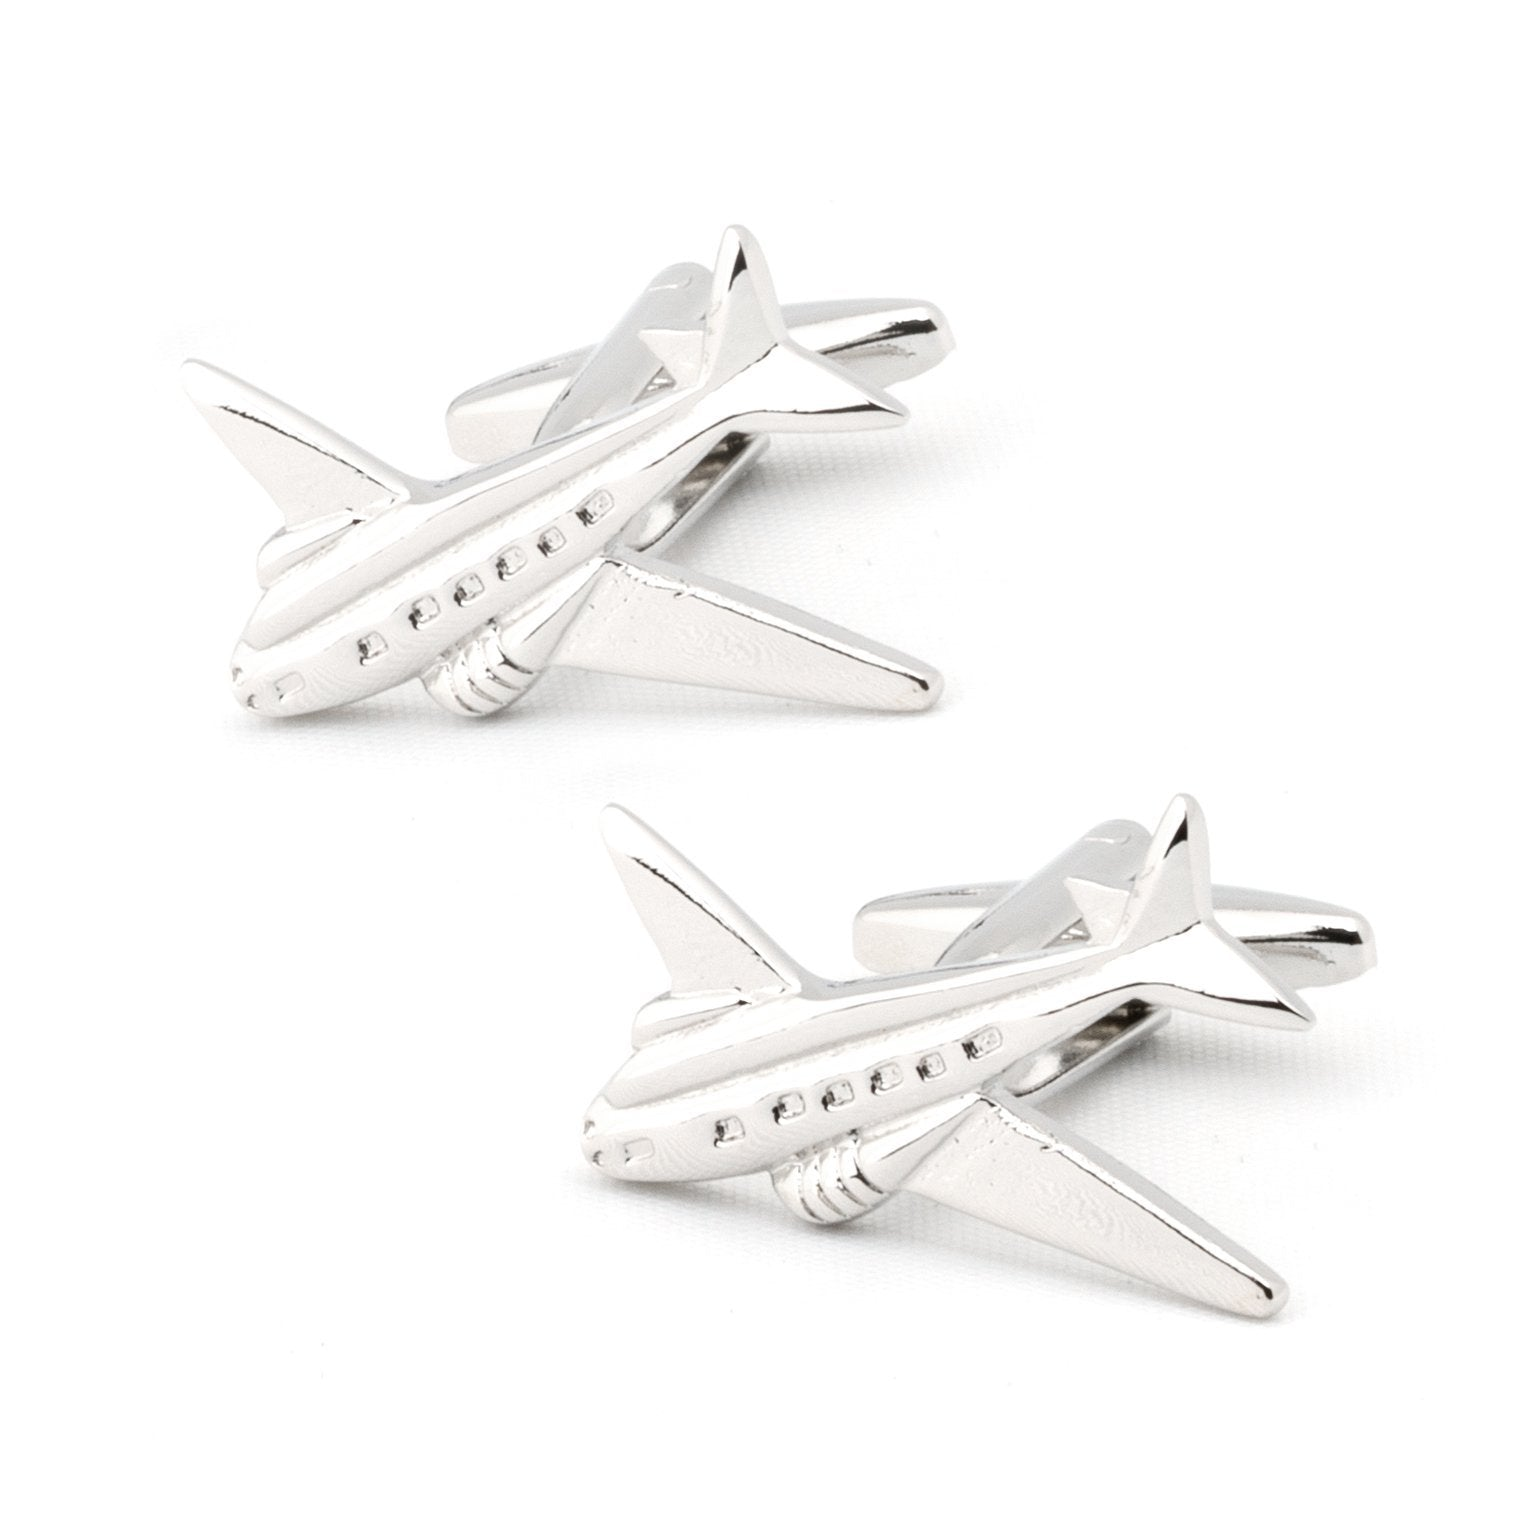 Jet Plane Silver Cufflinks, Novelty Cufflinks, Cuffed.com.au, CL6810, Aviation, Silver, Clinks Australia